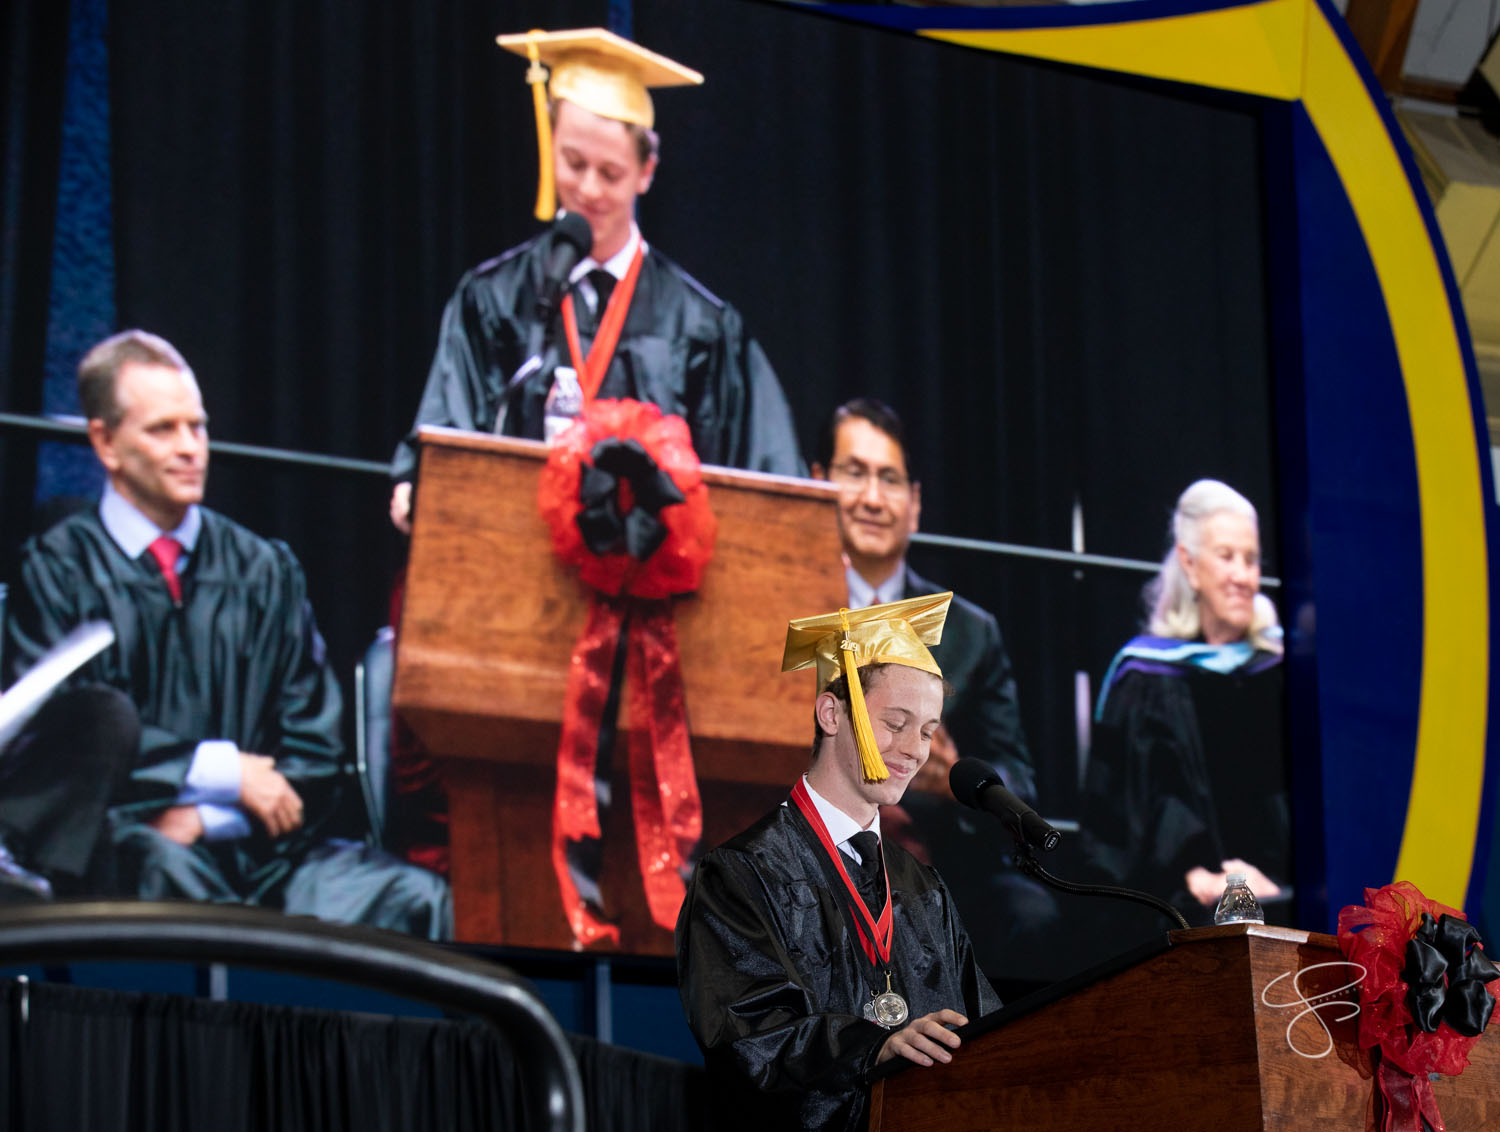 Coconino High School, Class of 2019, graduated on May 31, 2019 at NAU's Walkup Skydome. Photo by Sean Openshaw / www.SeanOpenshaw.com